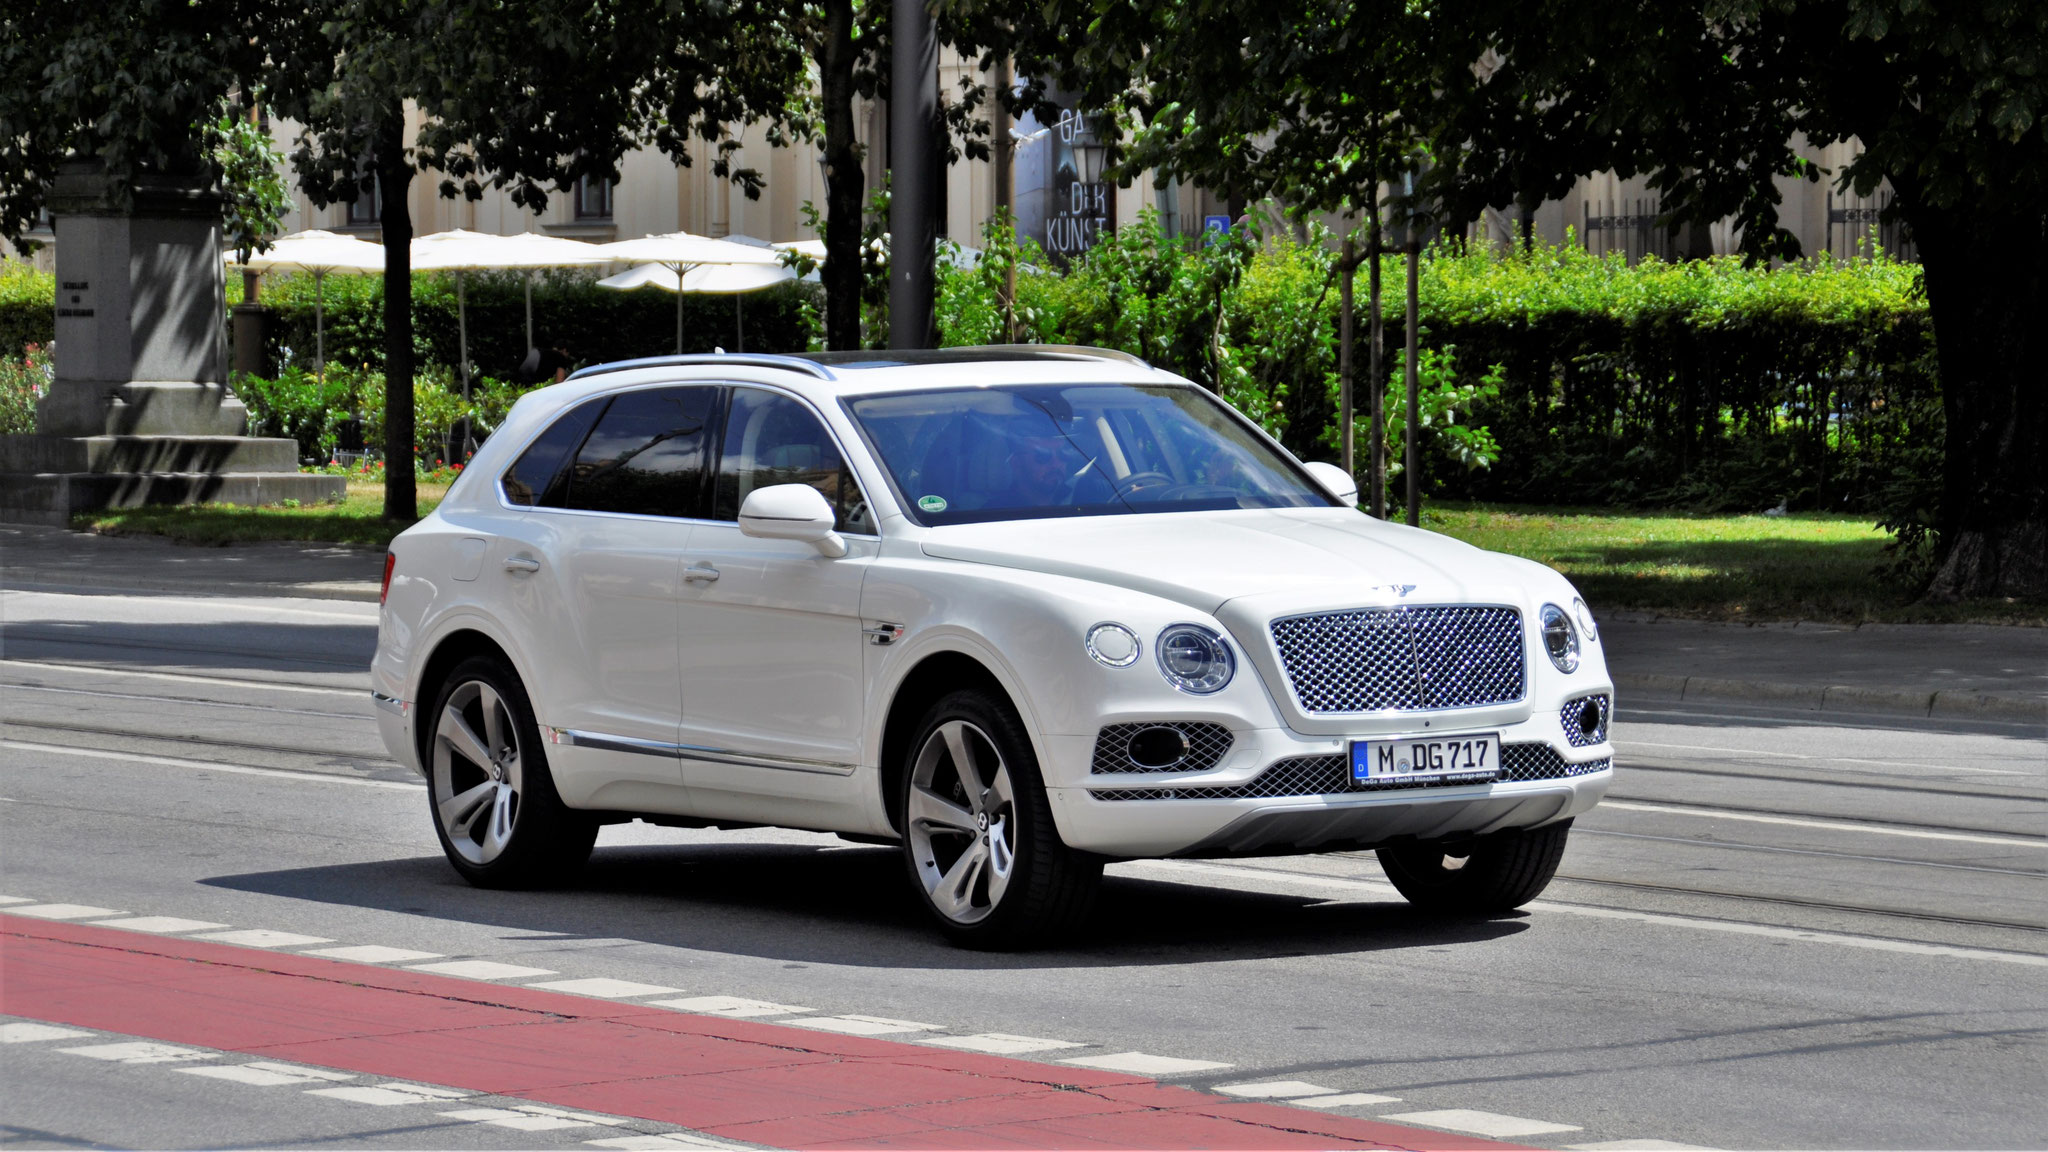 Bentley Bentayga - M-DG-717